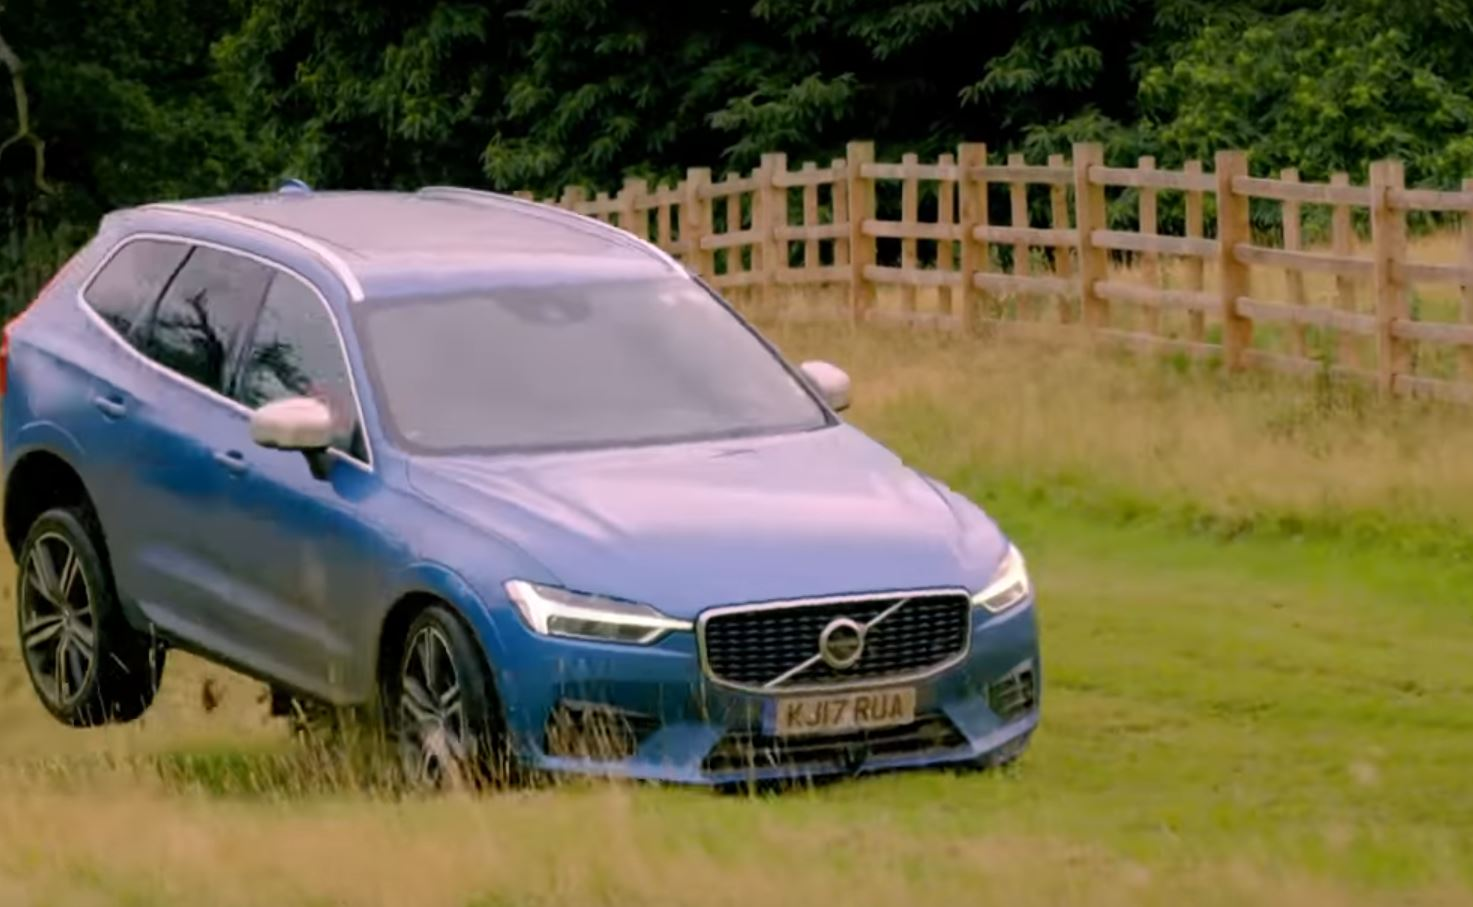 Volvo Xc60 And Alfa Romeo Star In Insane Top Gear Off Road Race